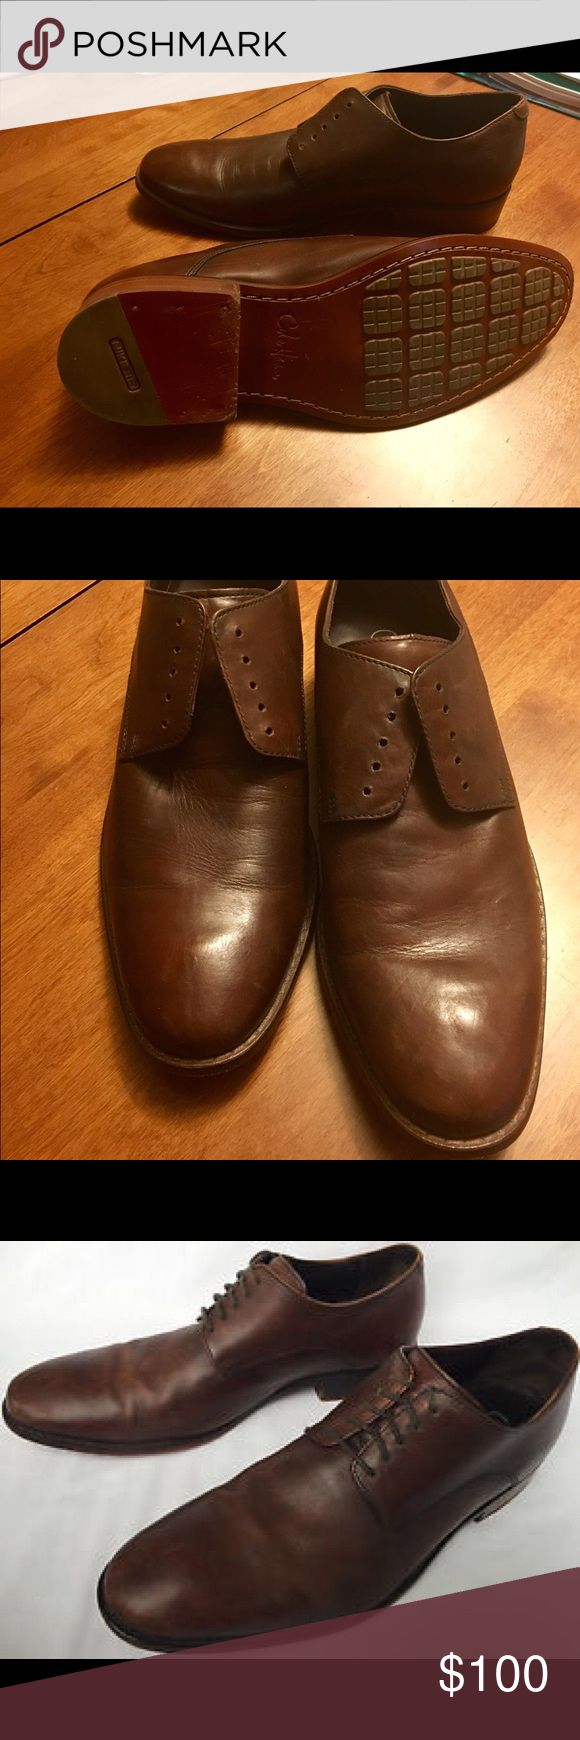 Cole Haan Air Coloton Oxford Shoes Cole Haan's Air Coloton Oxford Shoes. This pair has been worn 5-times and ended up just not being what my fiancé was looking for. This pair does not come with shoe laces. Originally sold for $198. Cole Haan Shoes Oxfords & Derbys